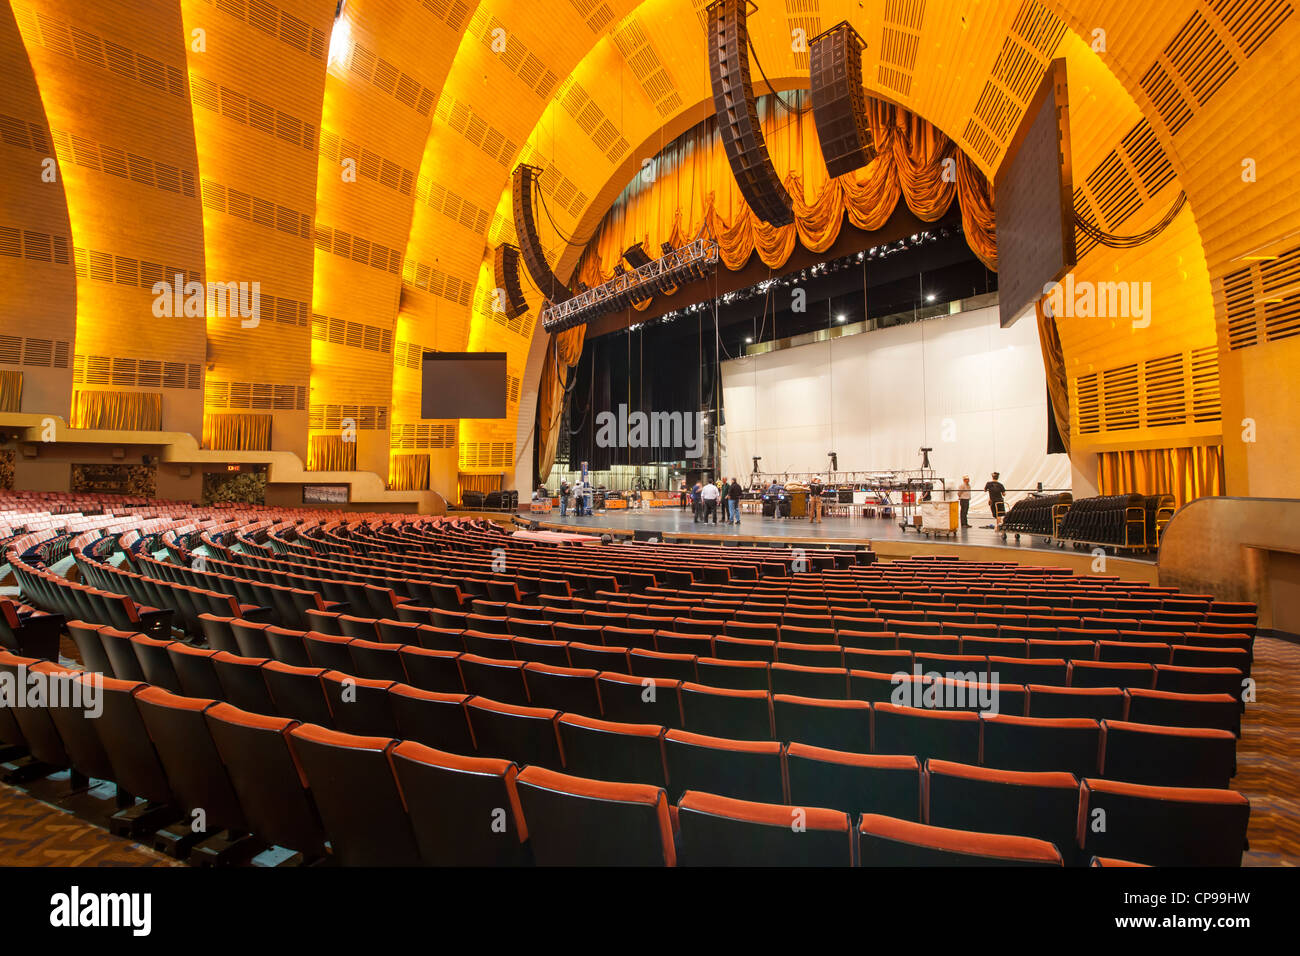 Workers prepare for a show in historic Radio City Music Hall in New York City - Stock Image